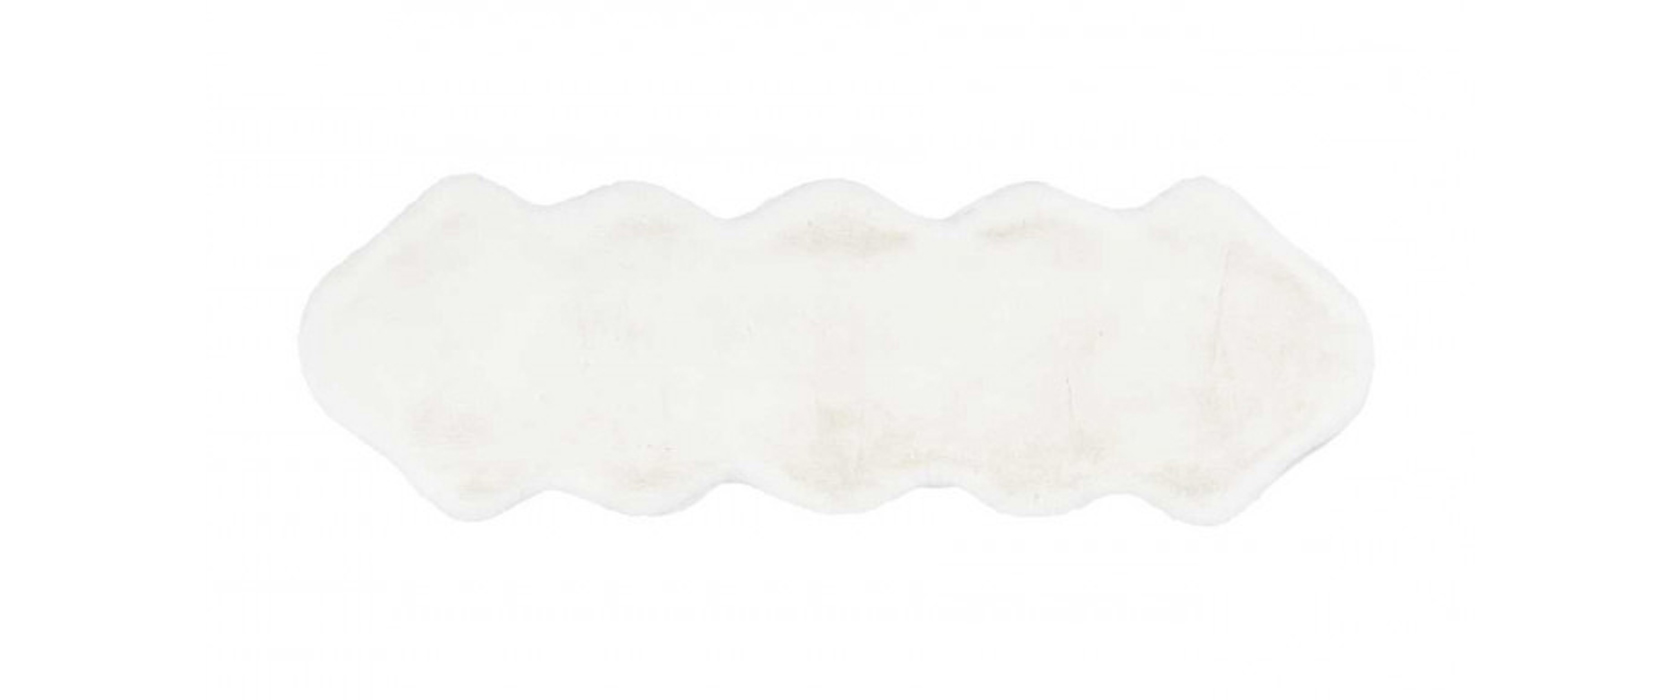 Килим Rabbit Double Sheepskin White 60x180 см - Pufetto